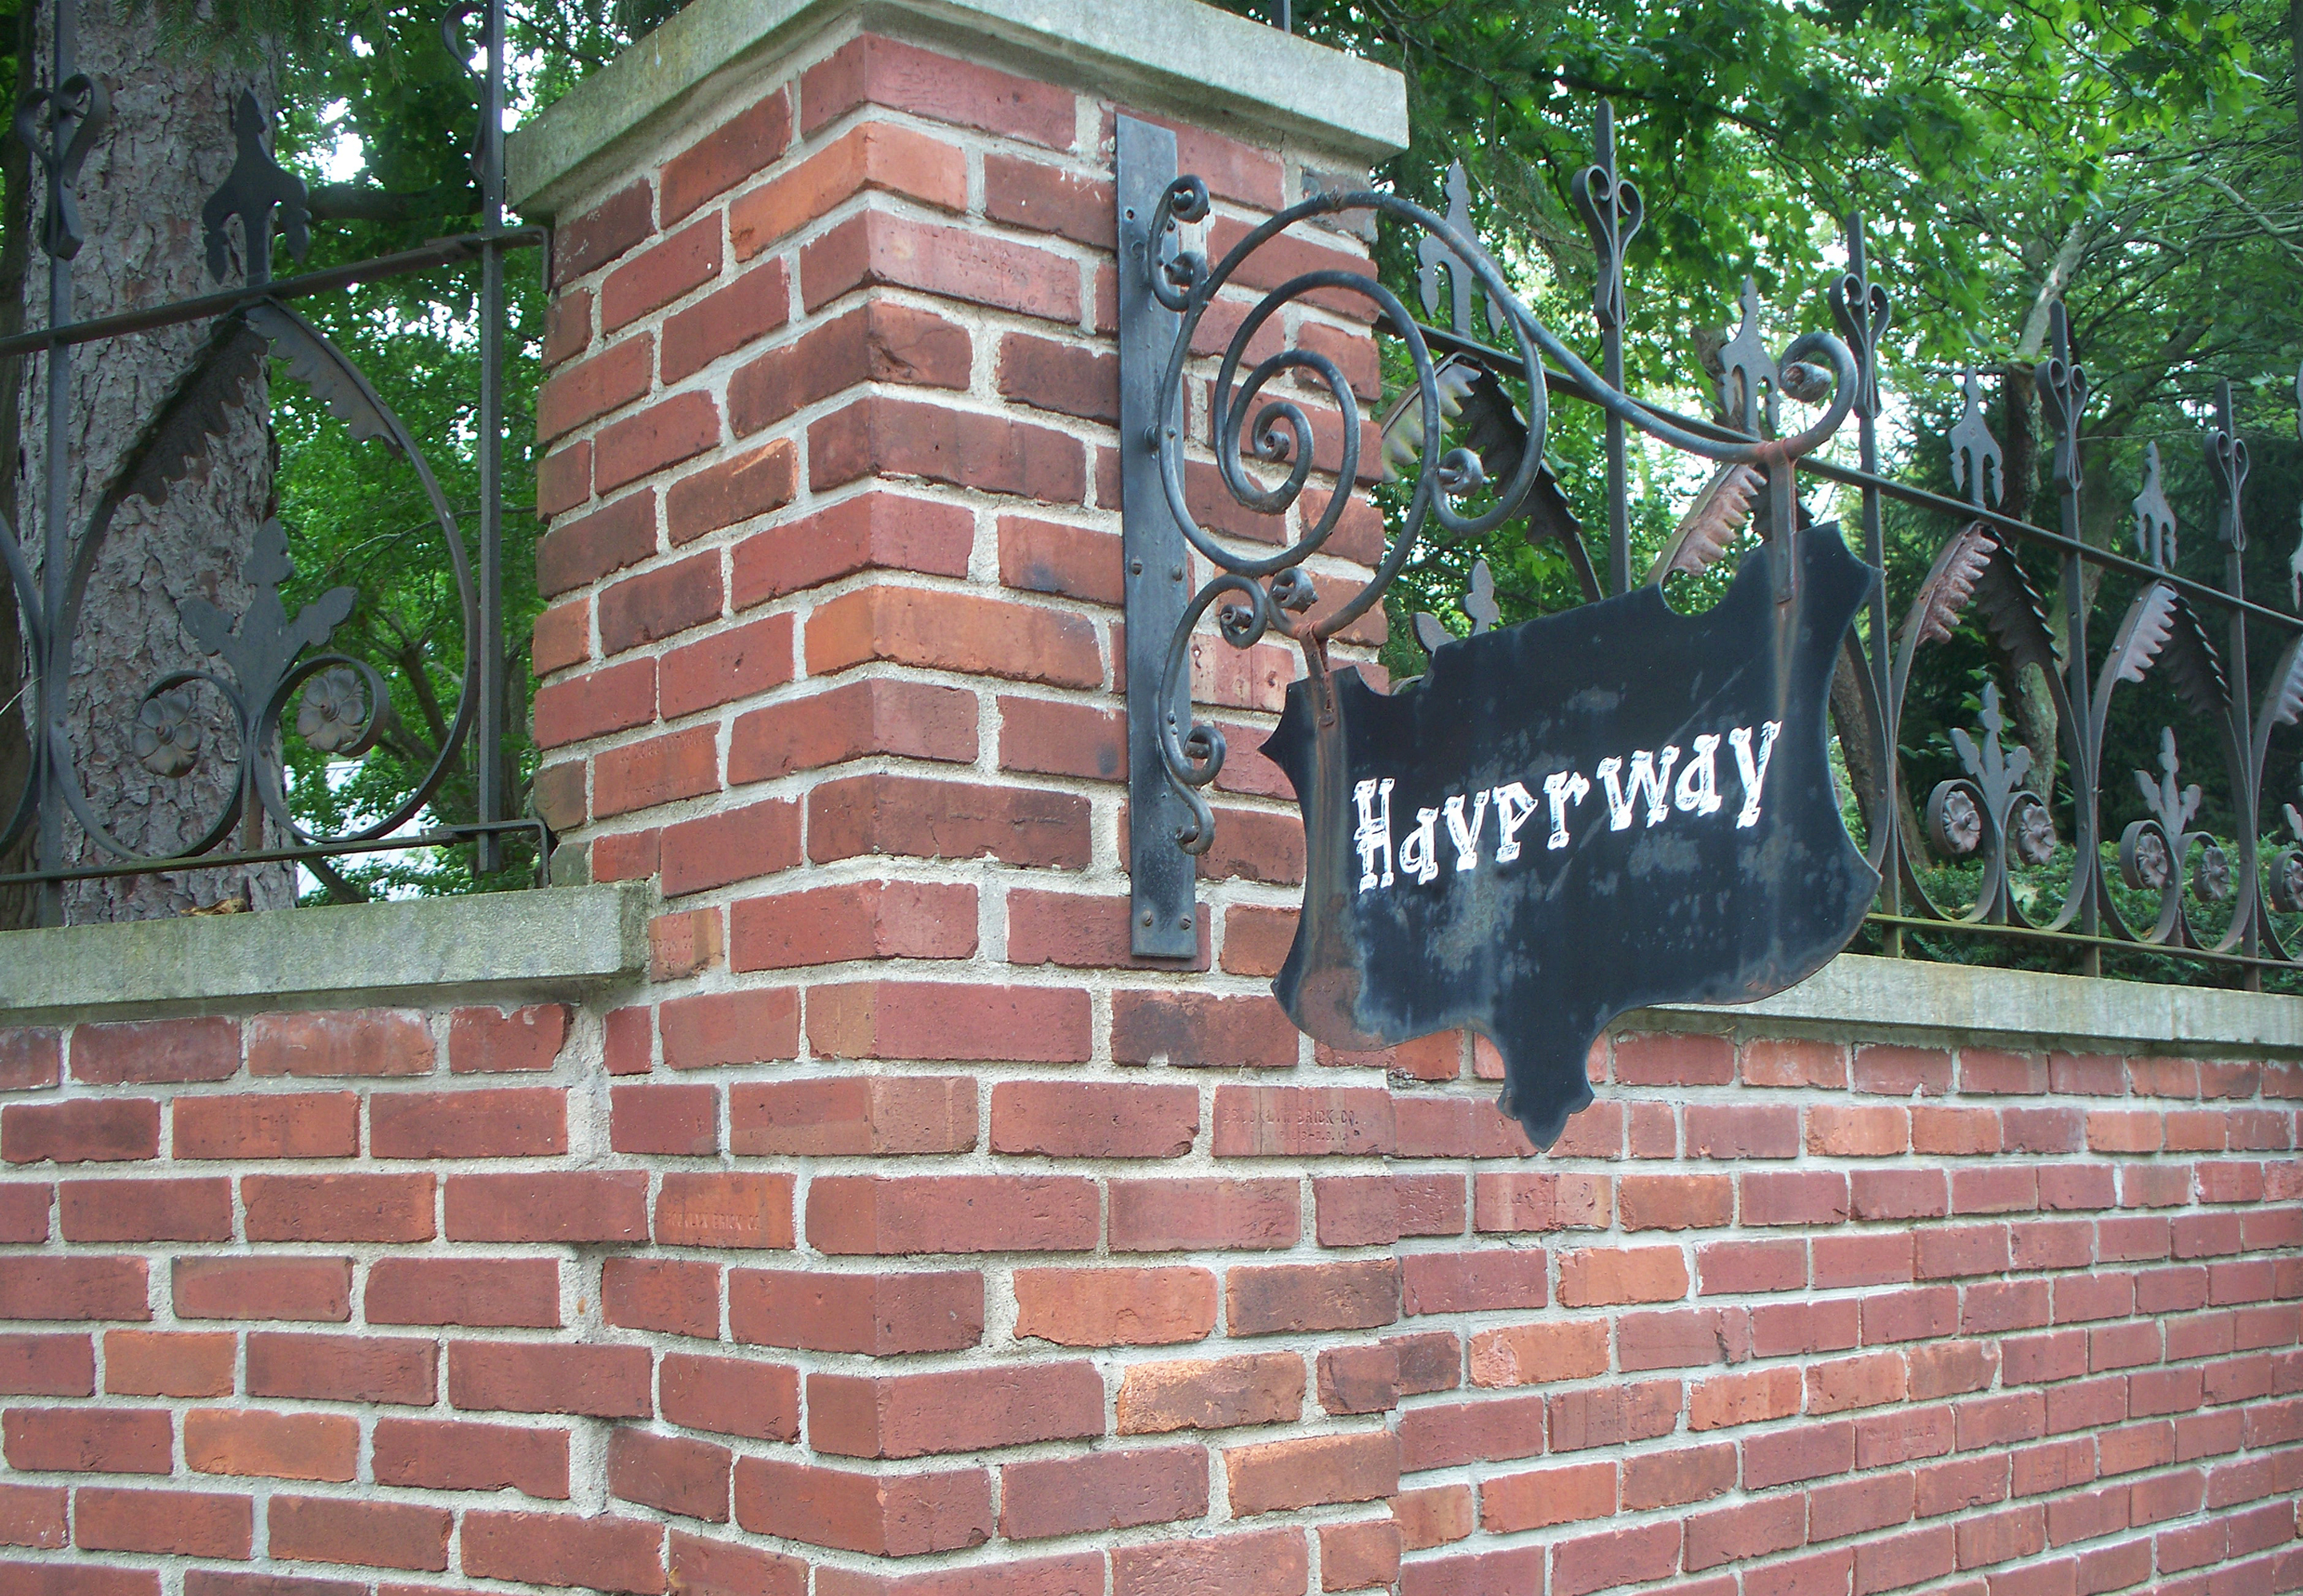 HI Mailbag:  Haverway Farm